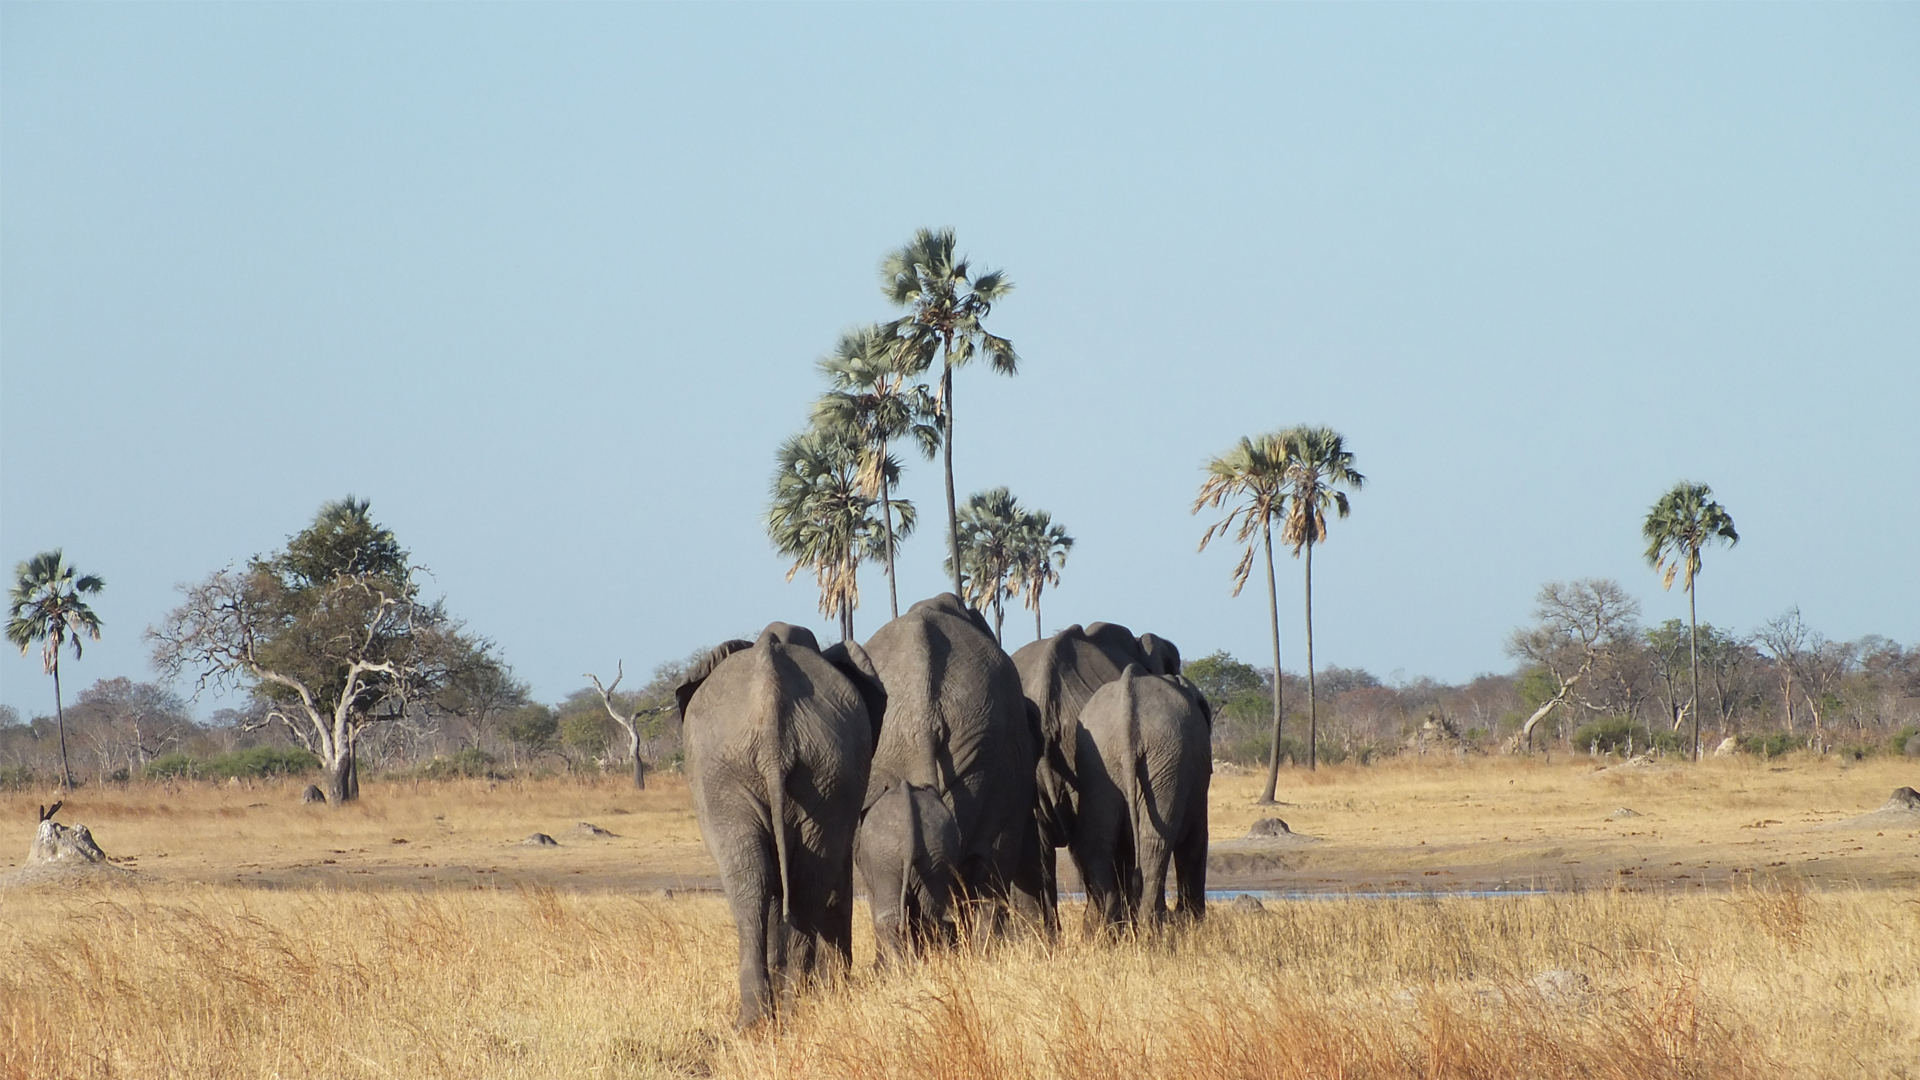 zimbabwe family elephants walking